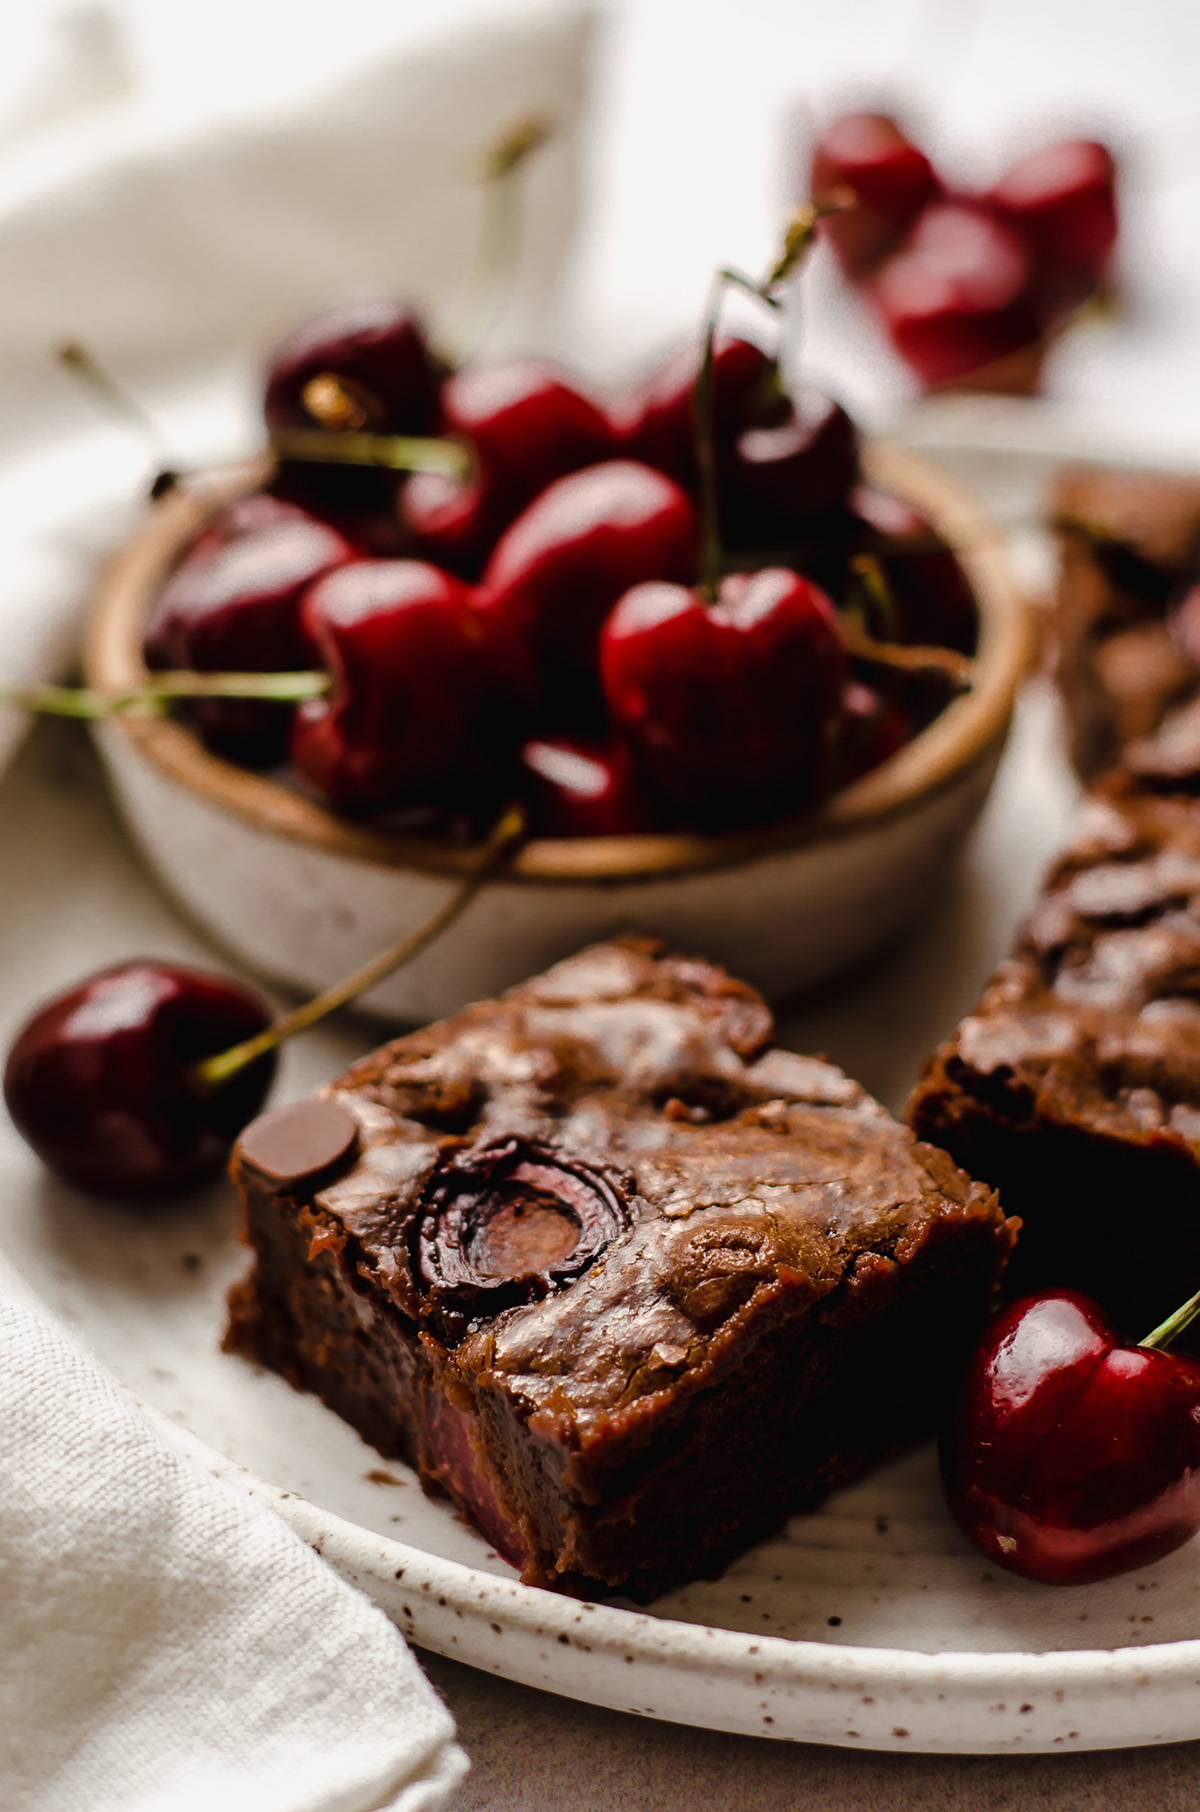 cherry brownies on a plate with a bowl of cherries